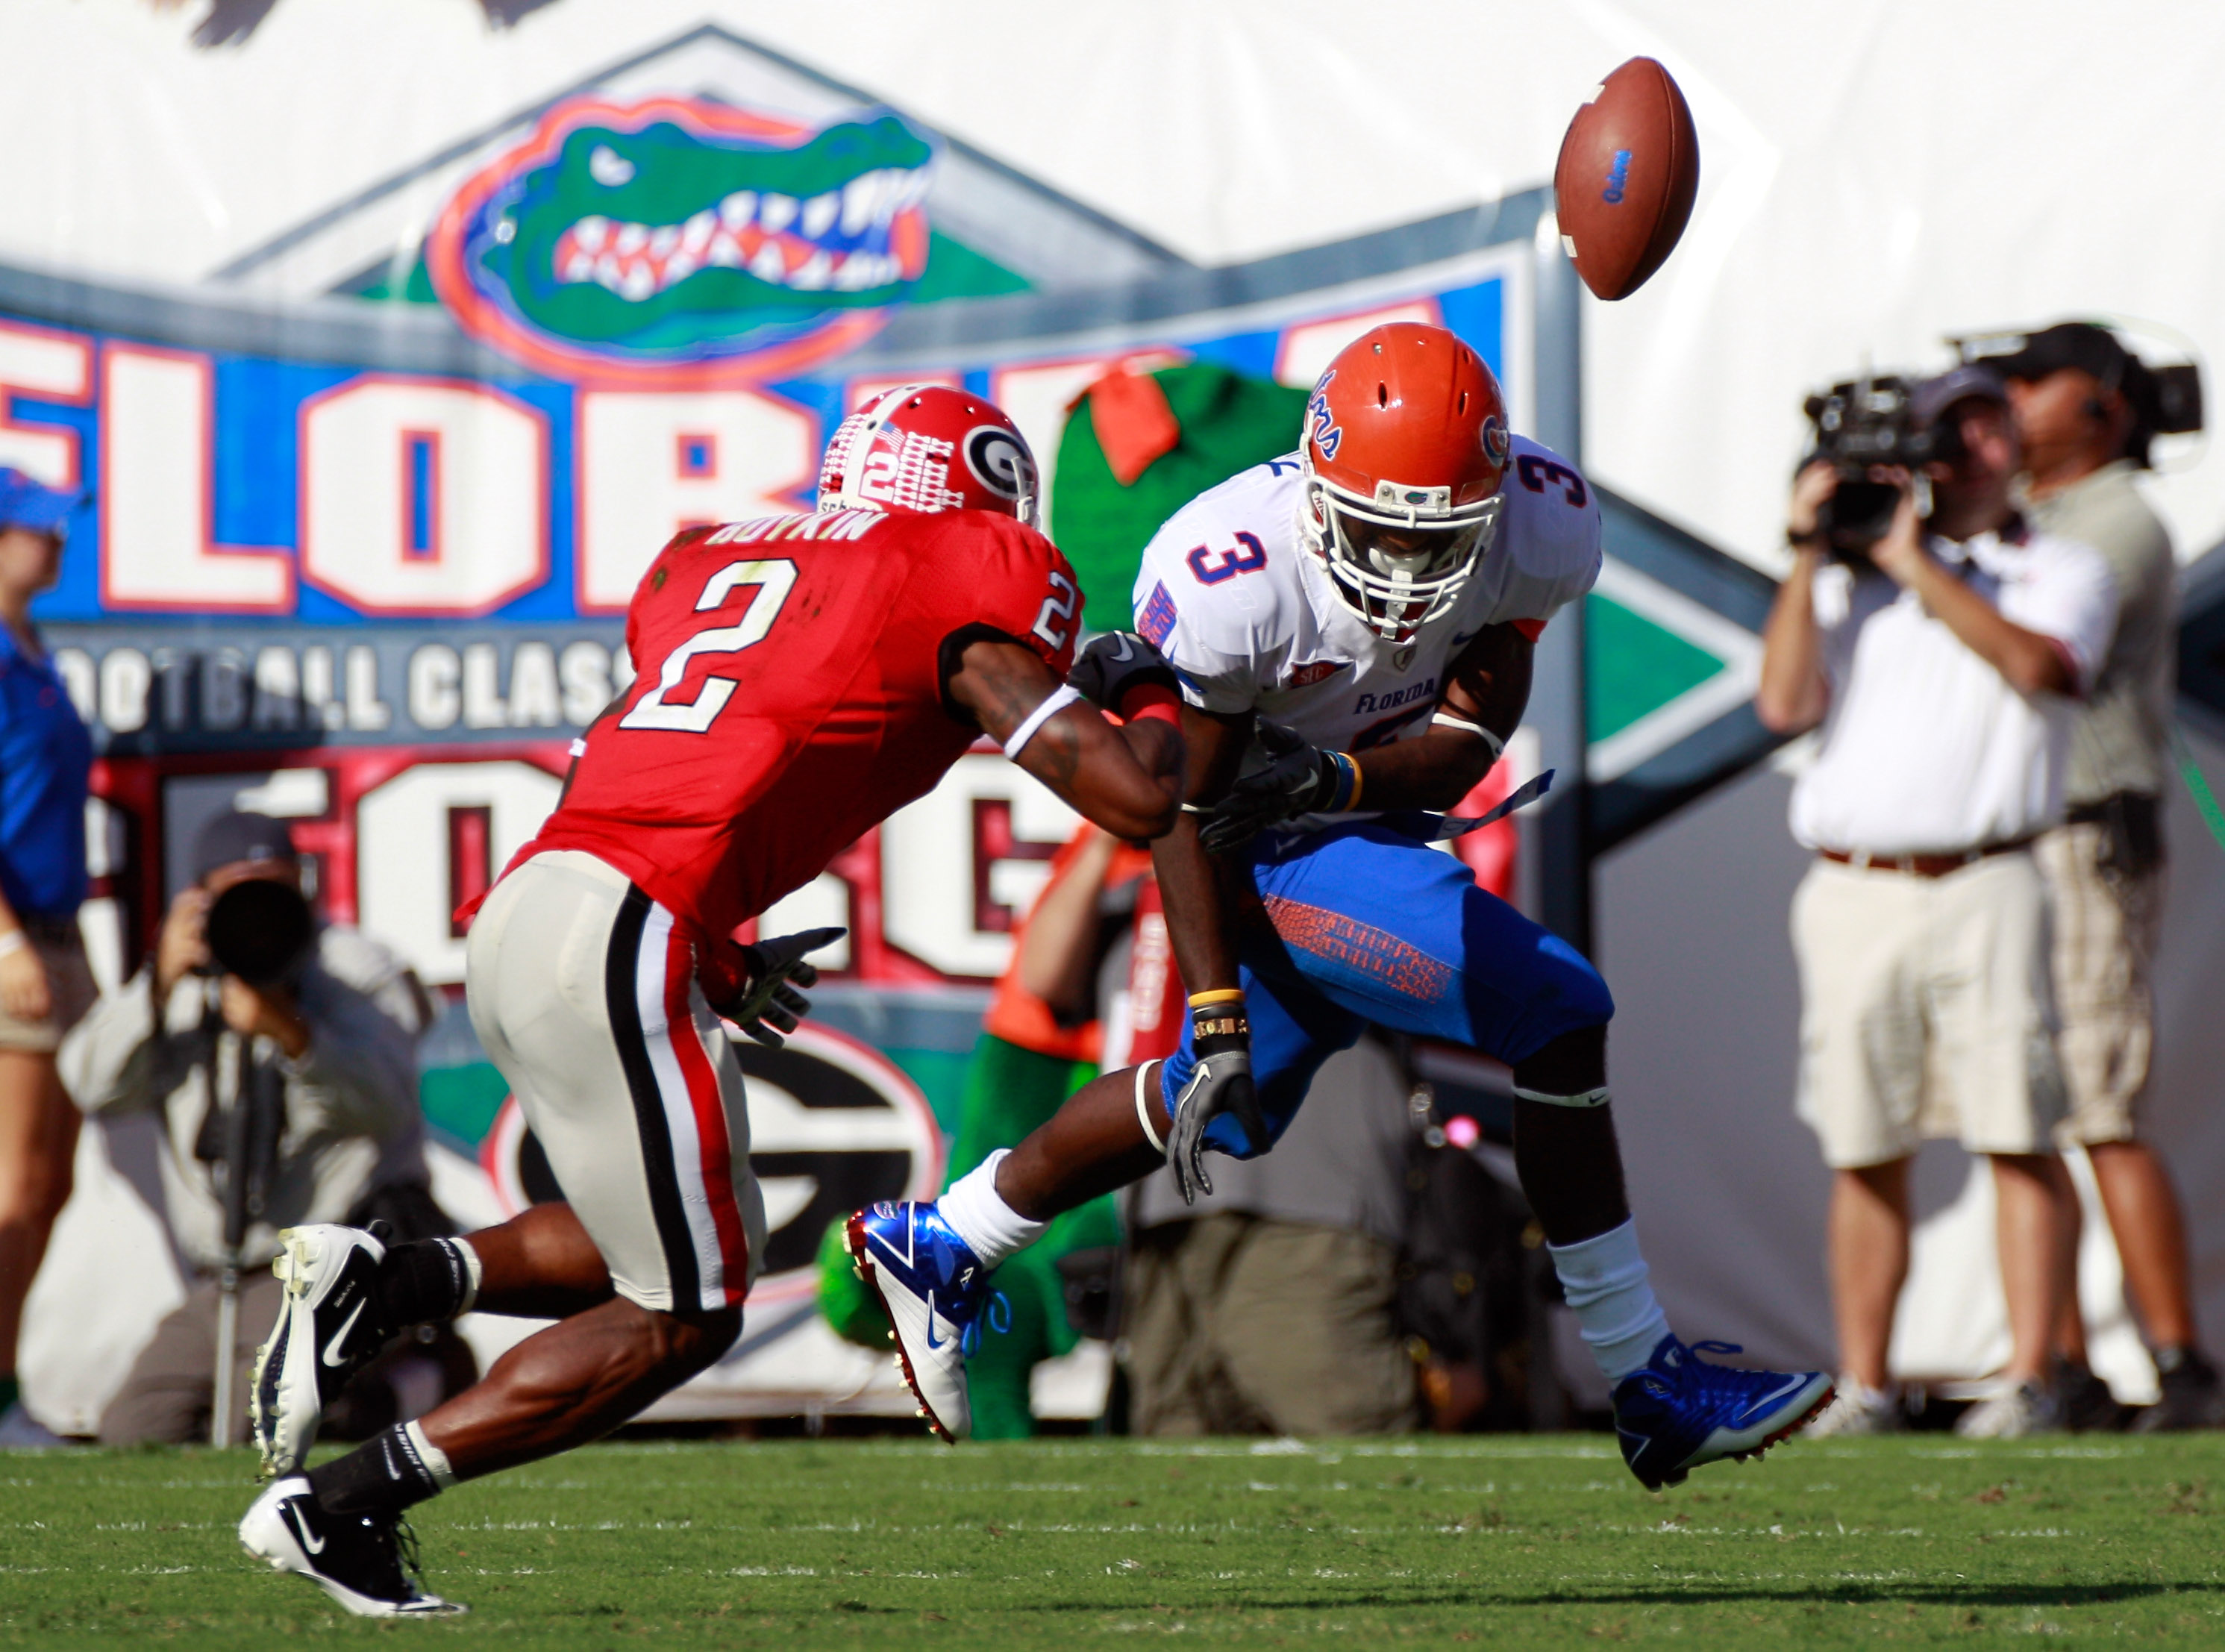 JACKSONVILLE, FL - OCTOBER 30:  Brandon Boykin #2 of the Georgia Bulldogs breaks up a pass atempt to Chris Rainey #3 of the Florida Gators during the game at EverBank Field on October 30, 2010 in Jacksonville, Florida.  (Photo by Sam Greenwood/Getty Image